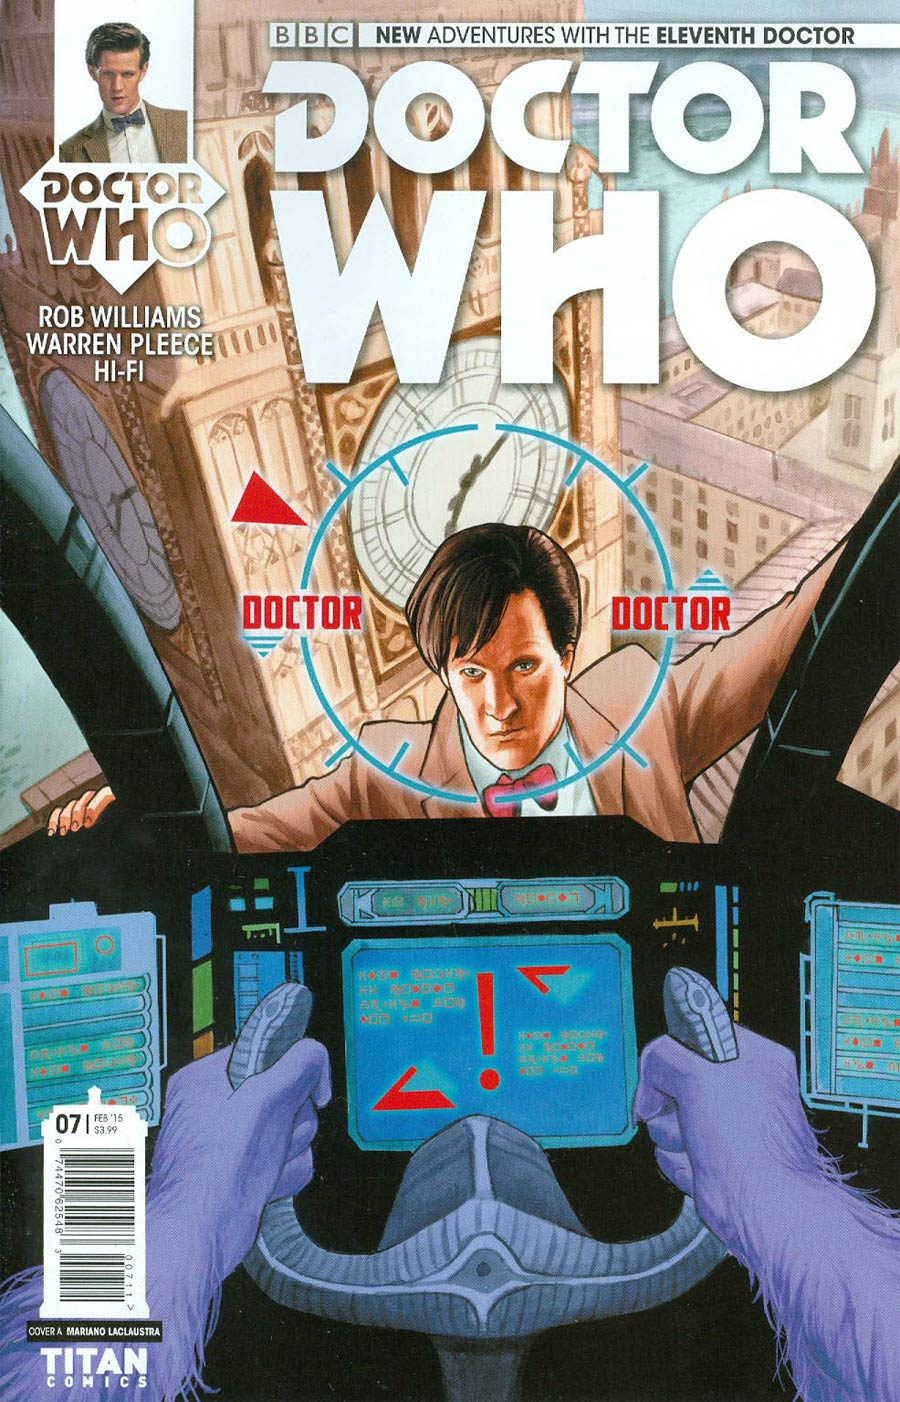 Doctor Who 11th Doctor #7 Cover A Regular Mariano Laclaustra Cover